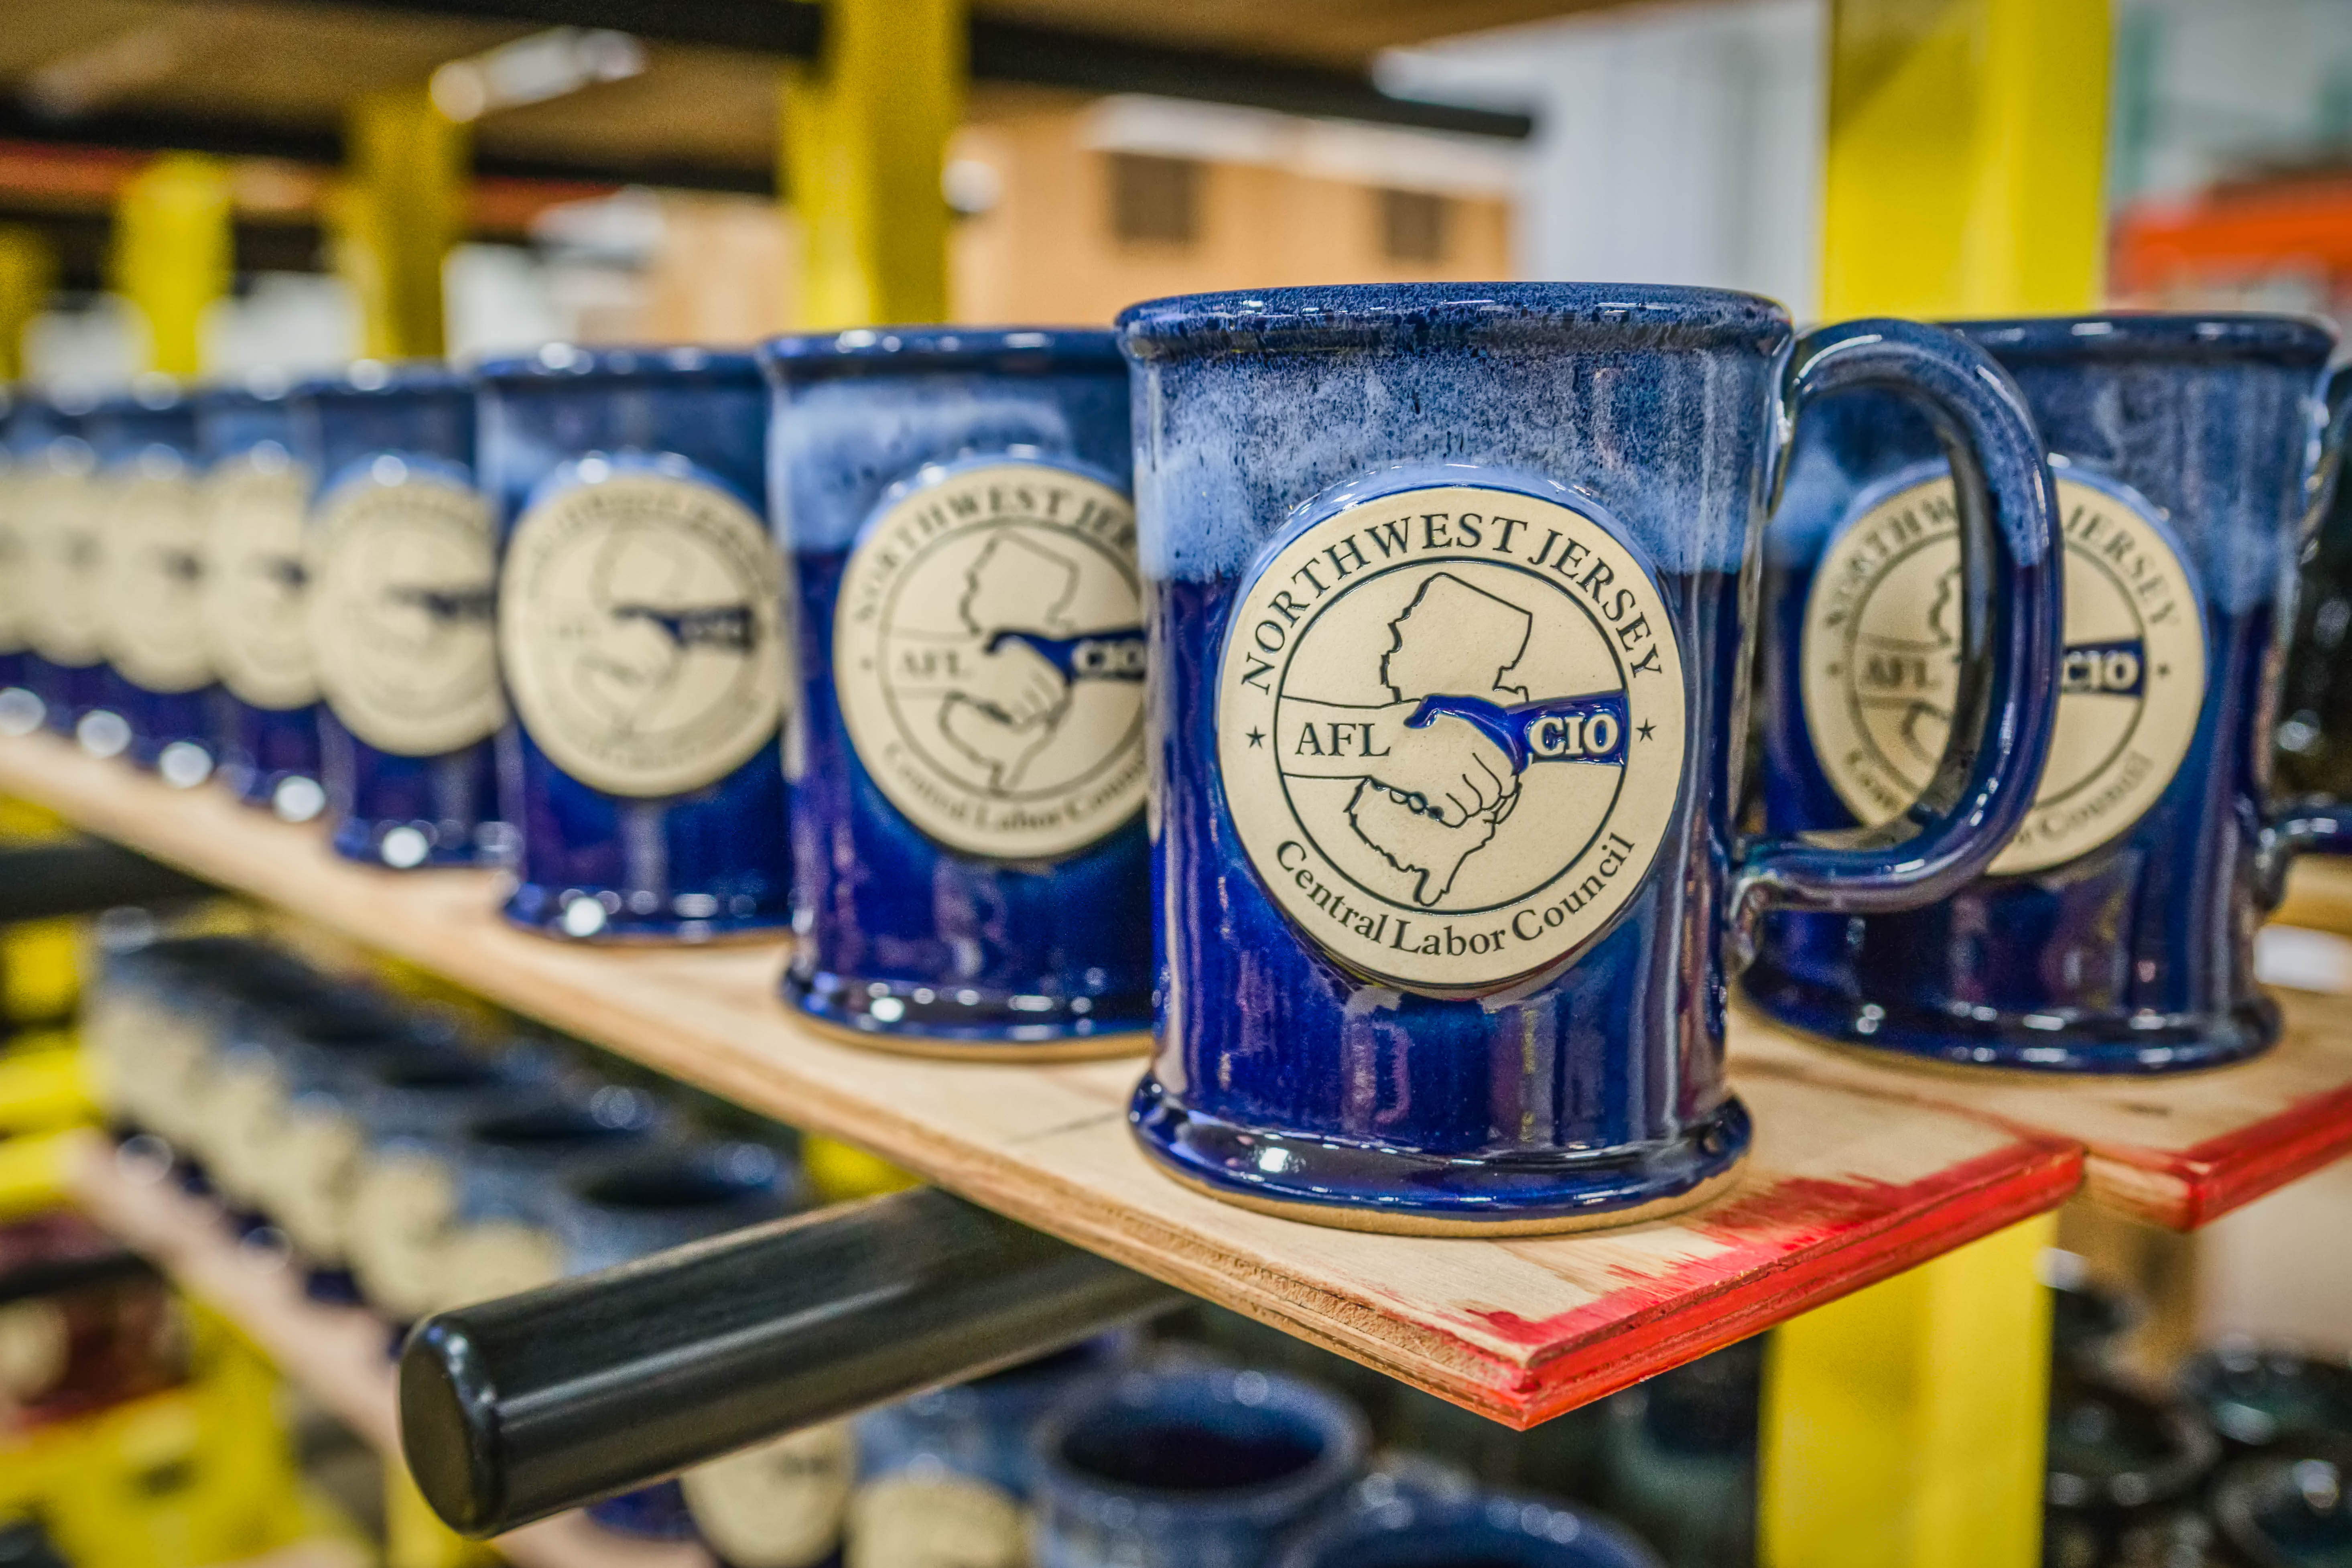 Mugs for Northwest Jersey Central Labor Council